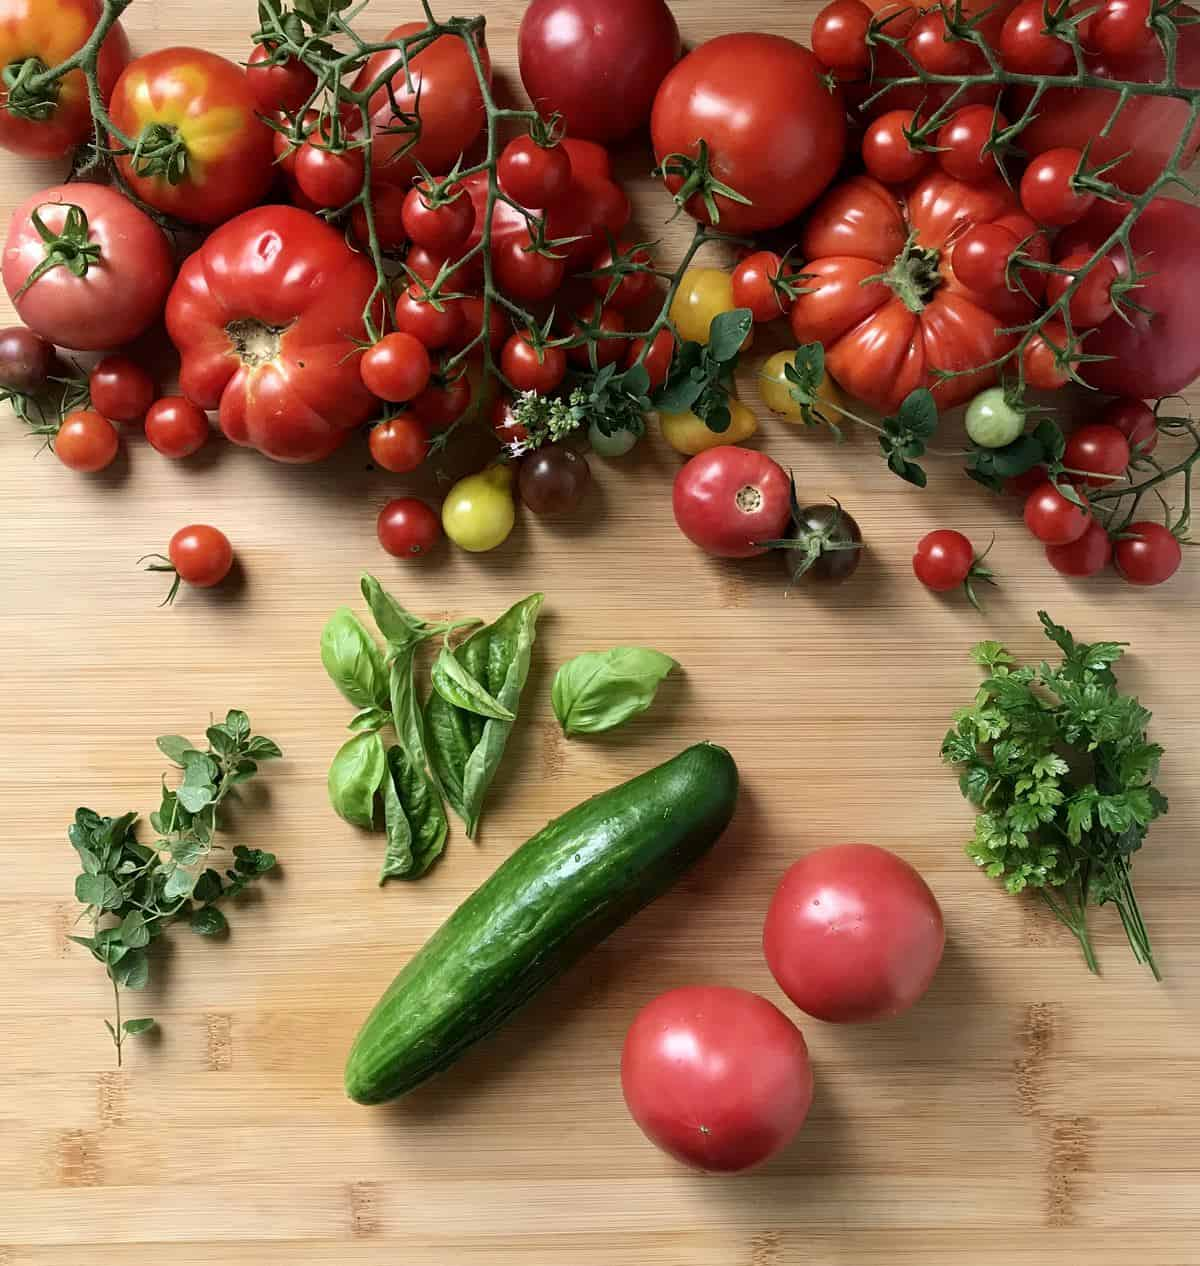 Herbs, one cucumber and lots and lots of different kinds of tomatoes on a wooden board.